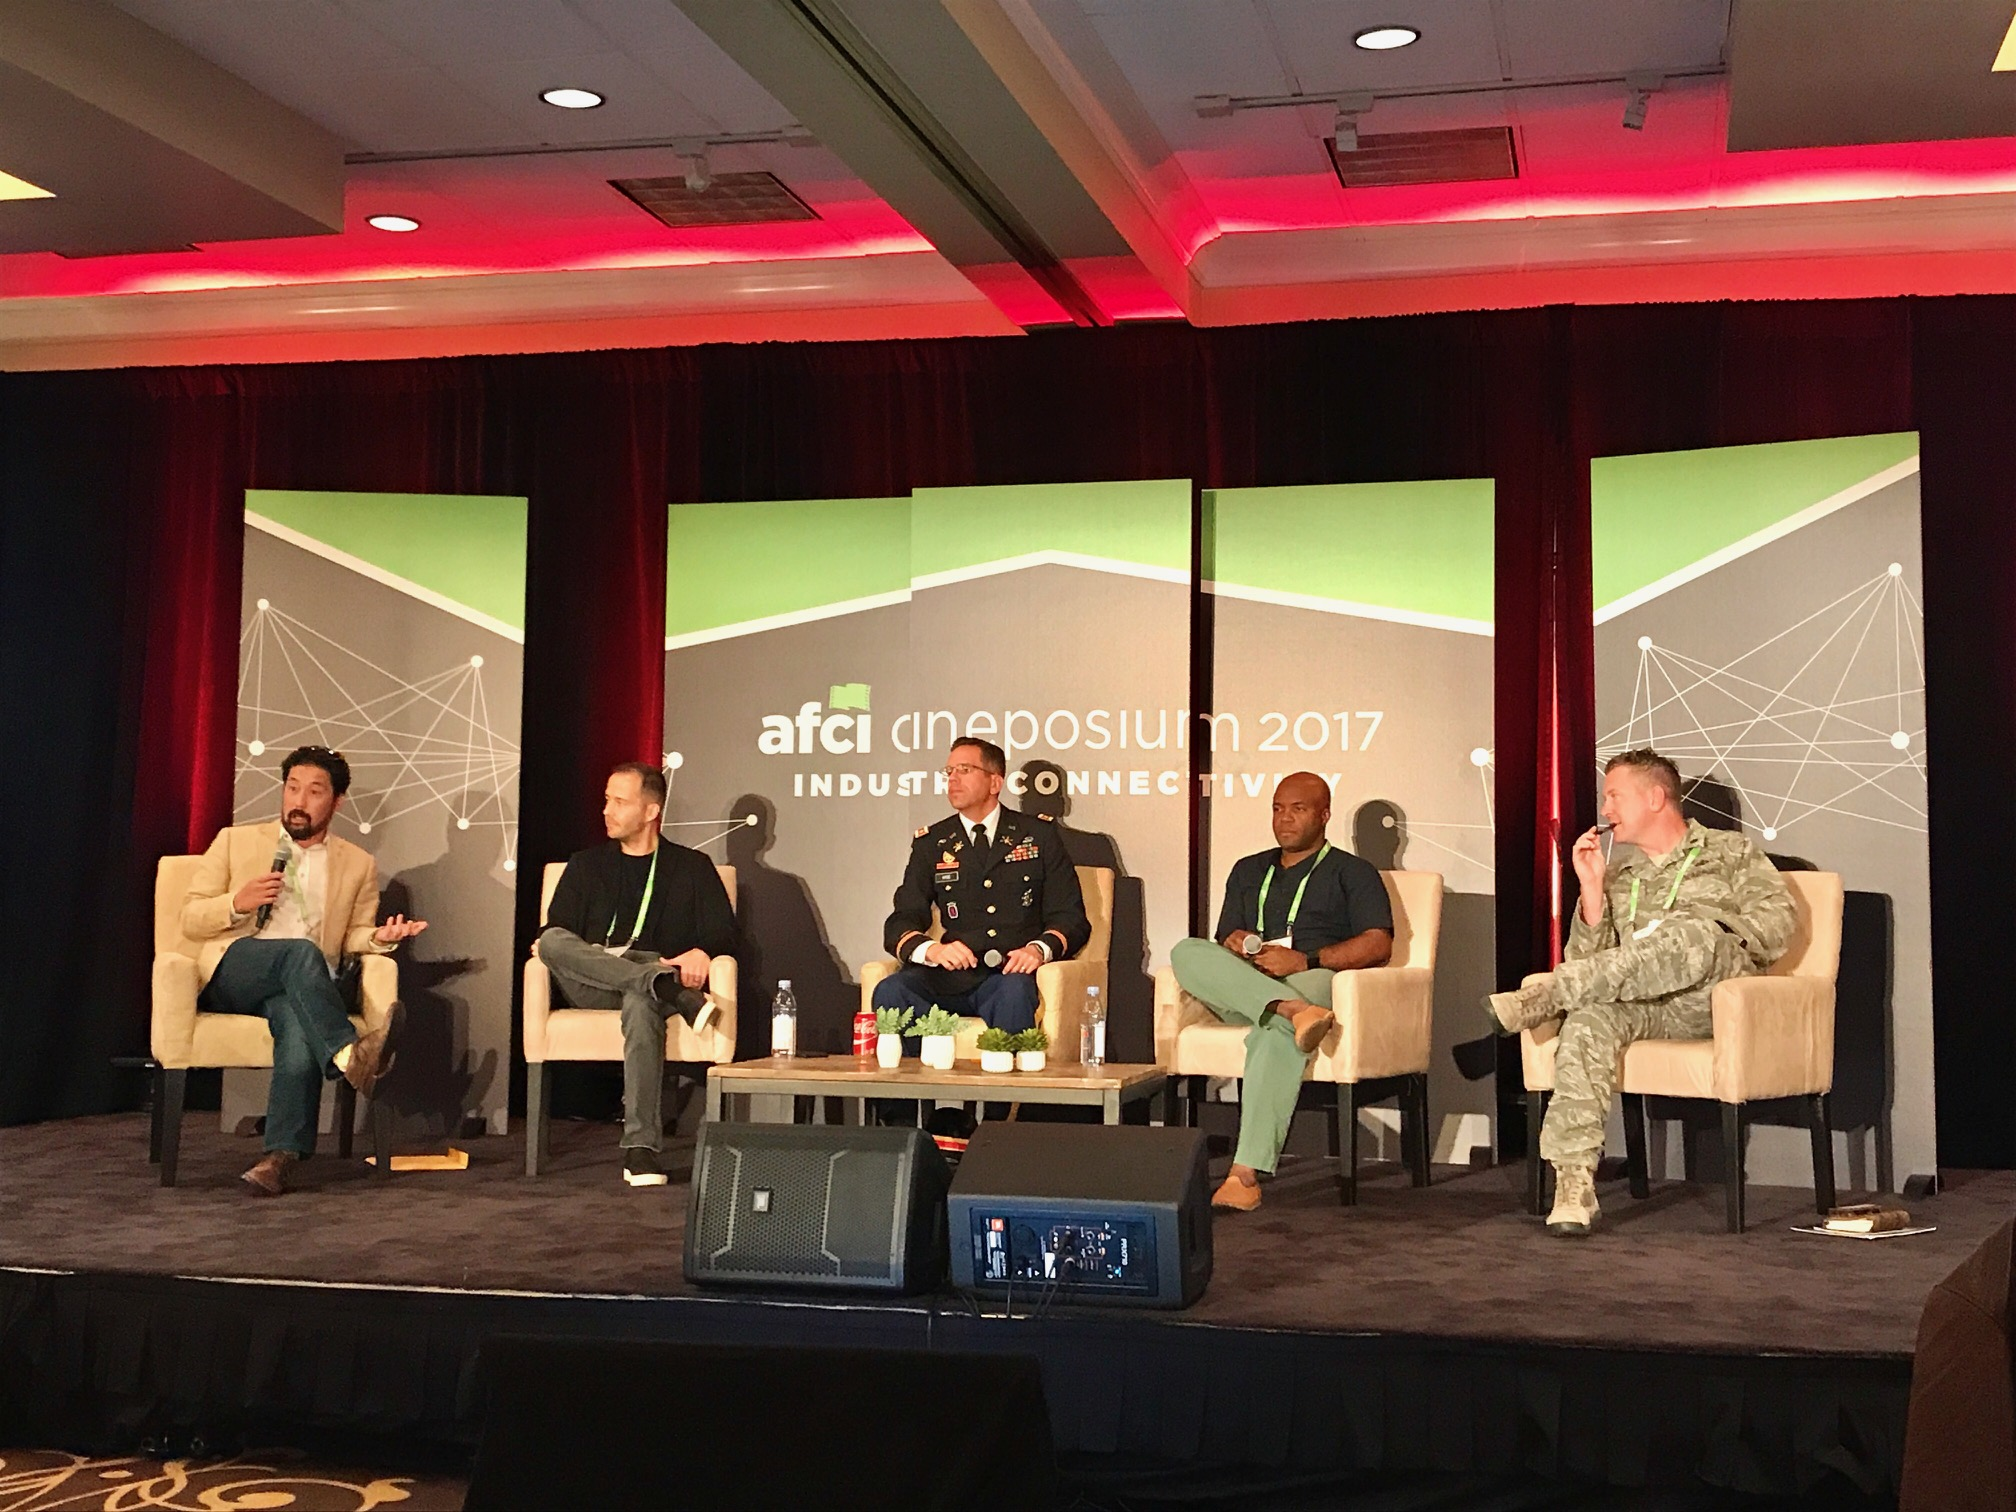 Kent Matsuoka moderates a panel on filming with the military for AFCI Cineposium 2017. Pictured L-R Kent Matsuoka; Mikko Alanne; Lt Col Timothy Hyde, USA; CAPT (ret) John Pruitt, USCG; Lt Col Nathan Broshear, USAF - Oct 2017